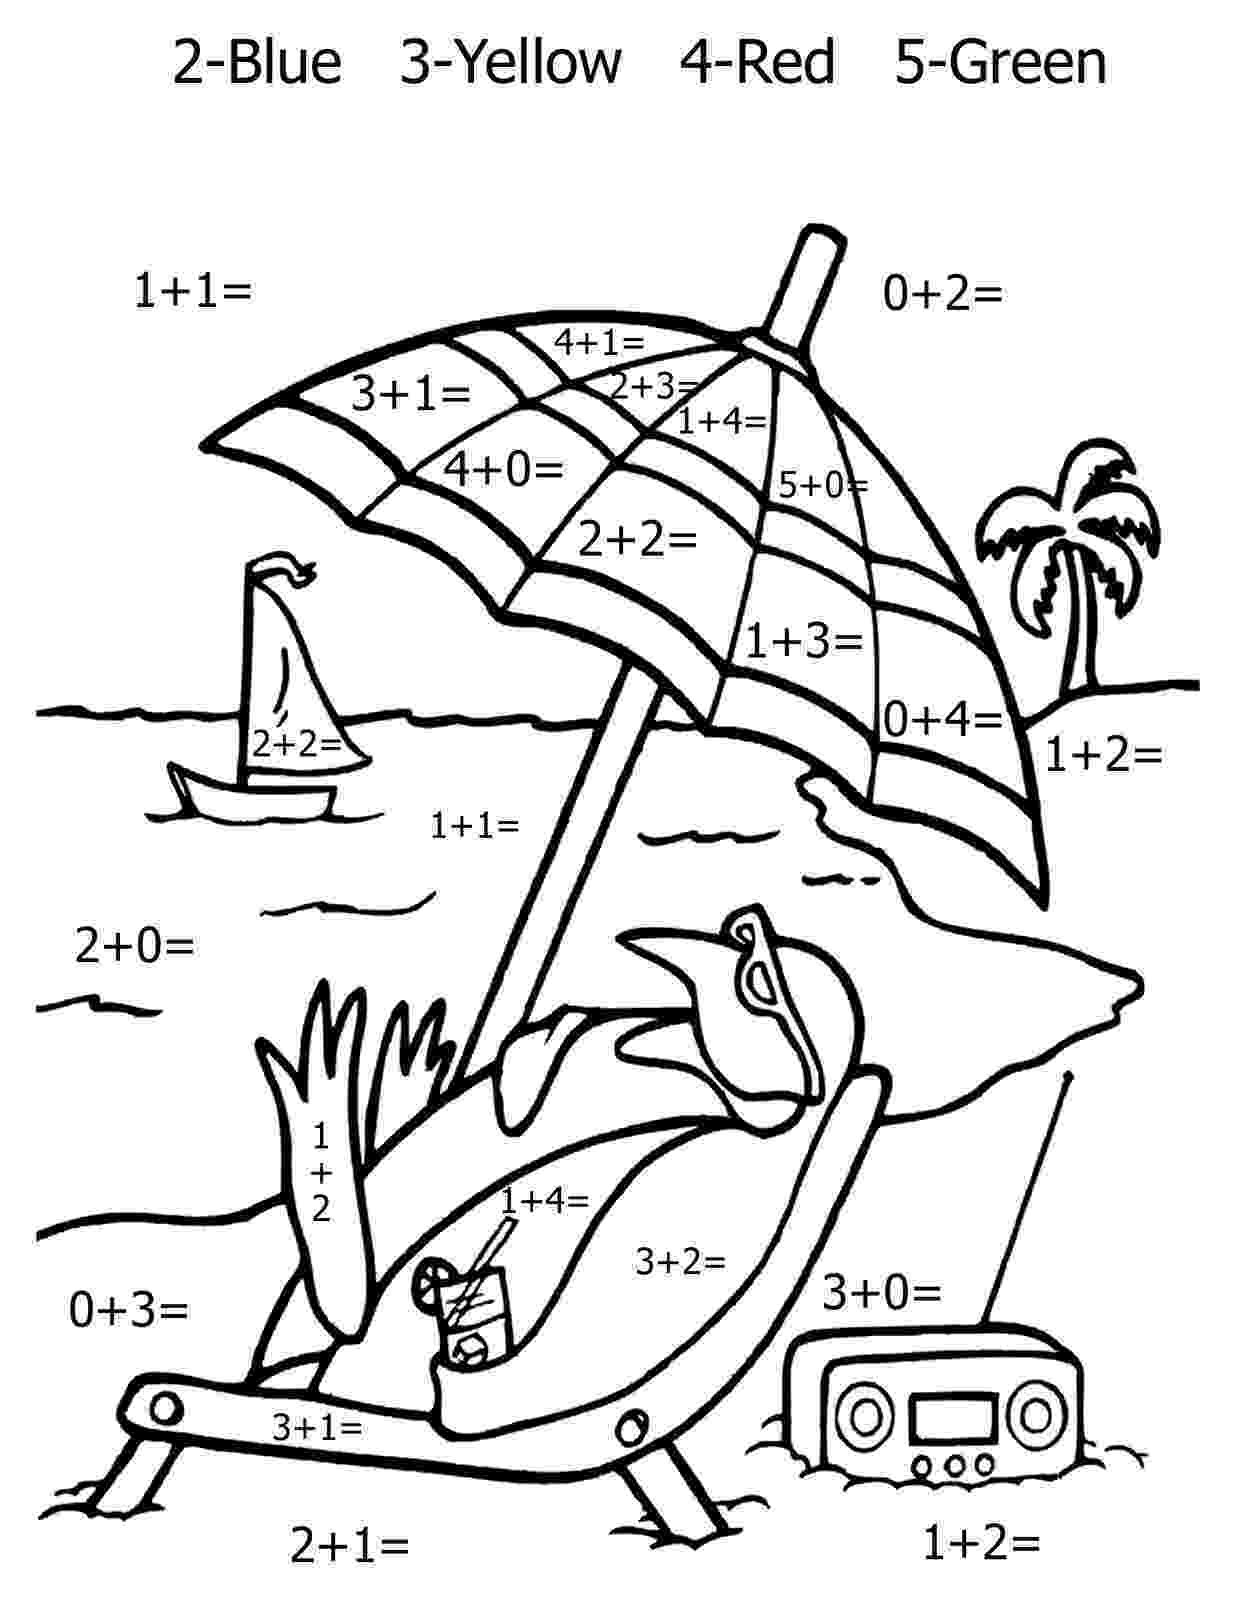 coloring games math coloring pages best coloring pages for kids games coloring